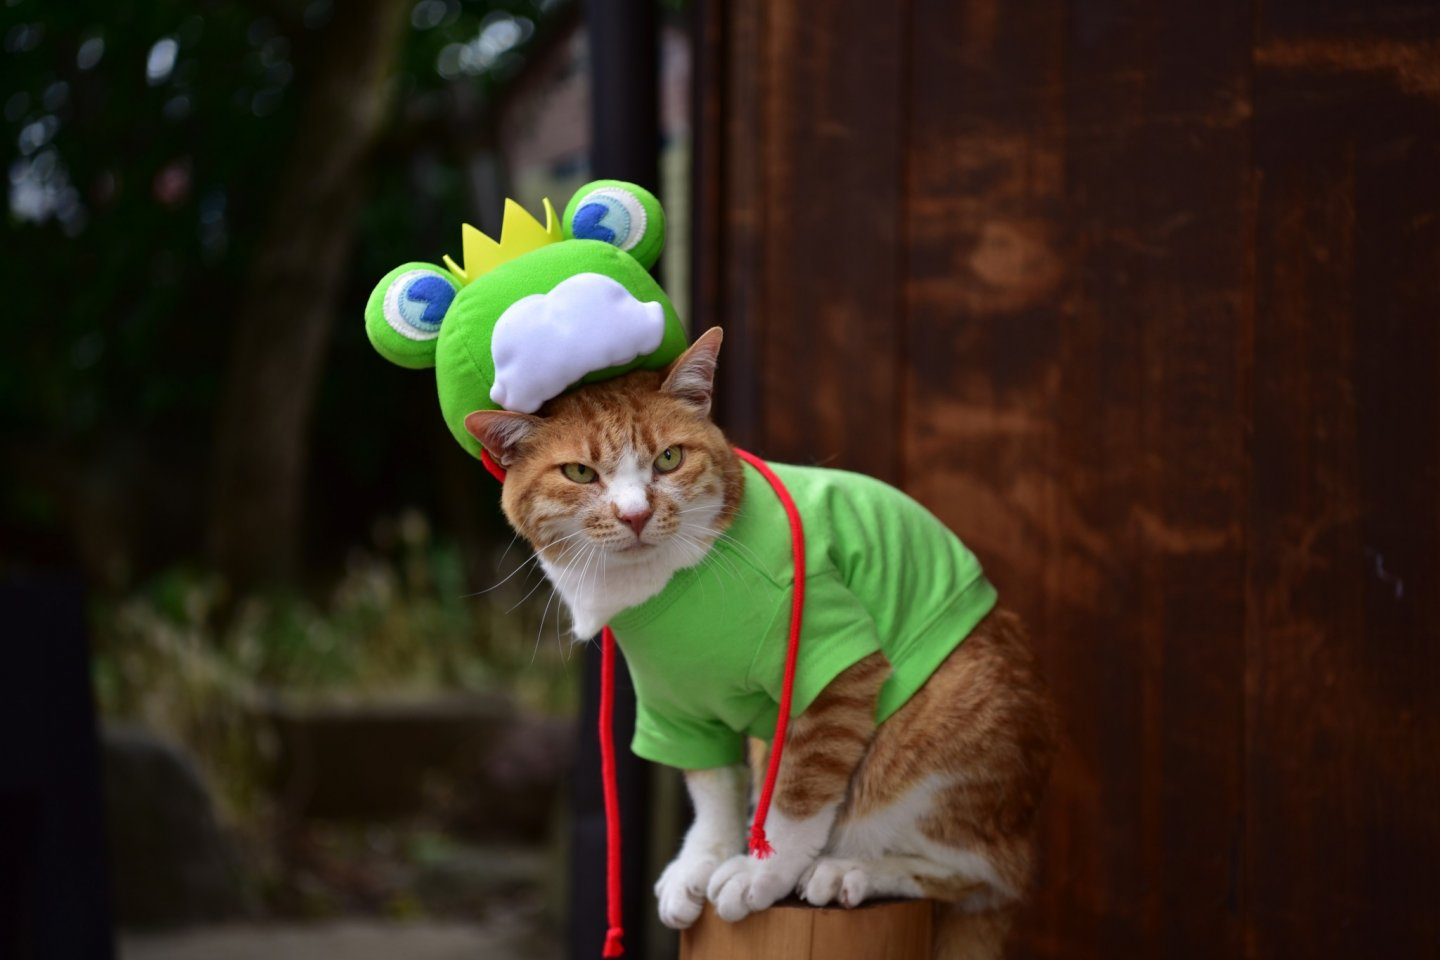 The star of the festival: cat frog